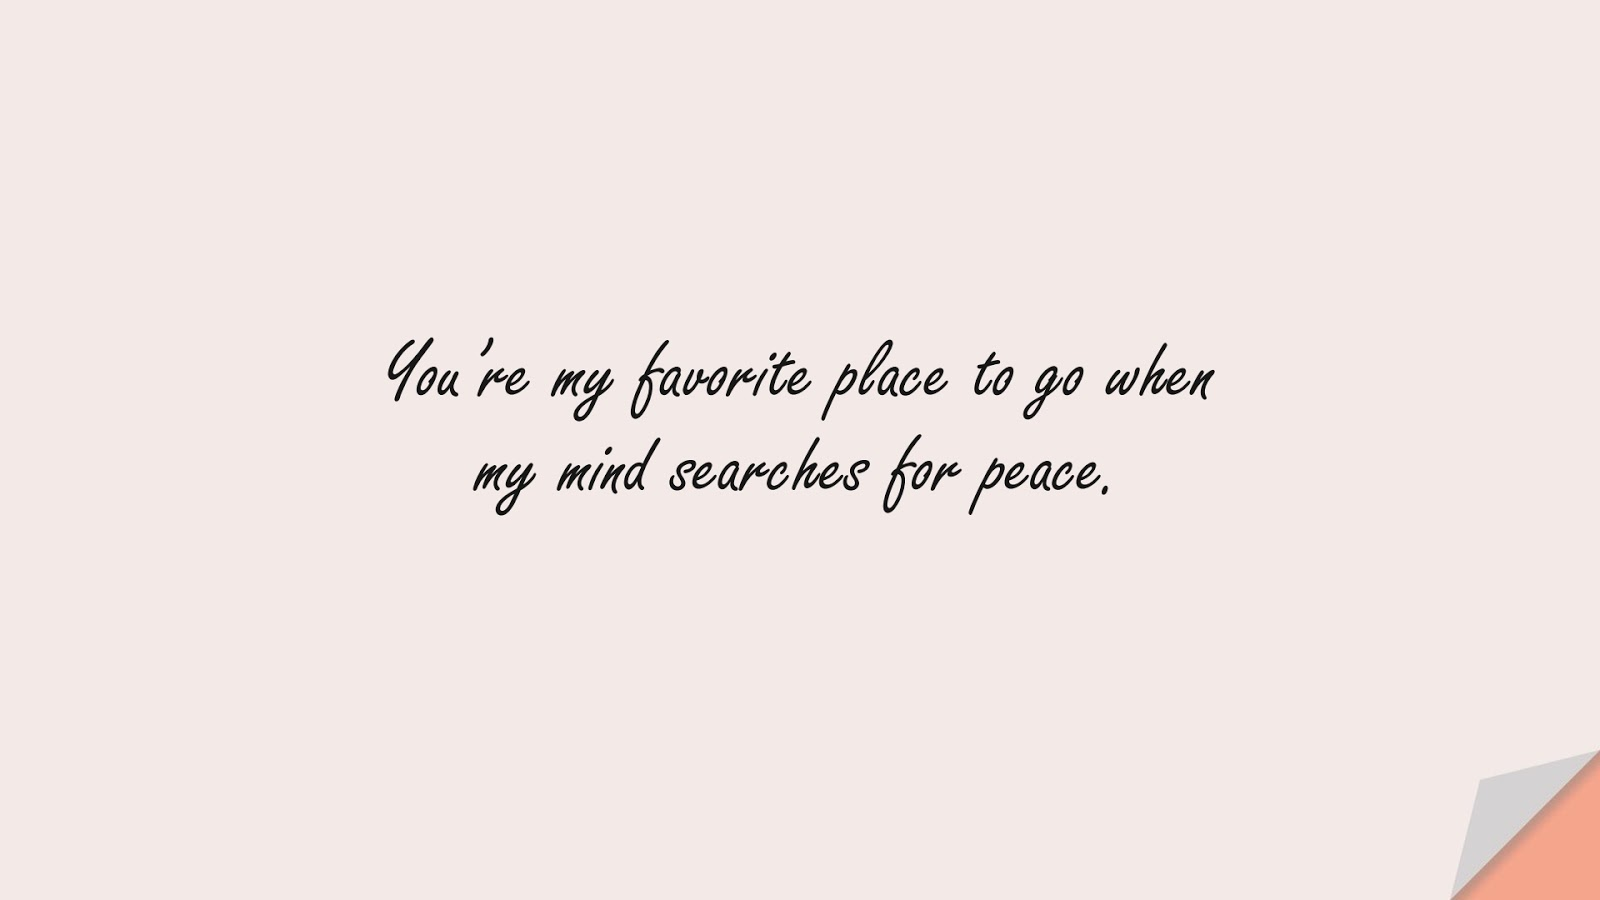 You're my favorite place to go when my mind searches for peace.FALSE